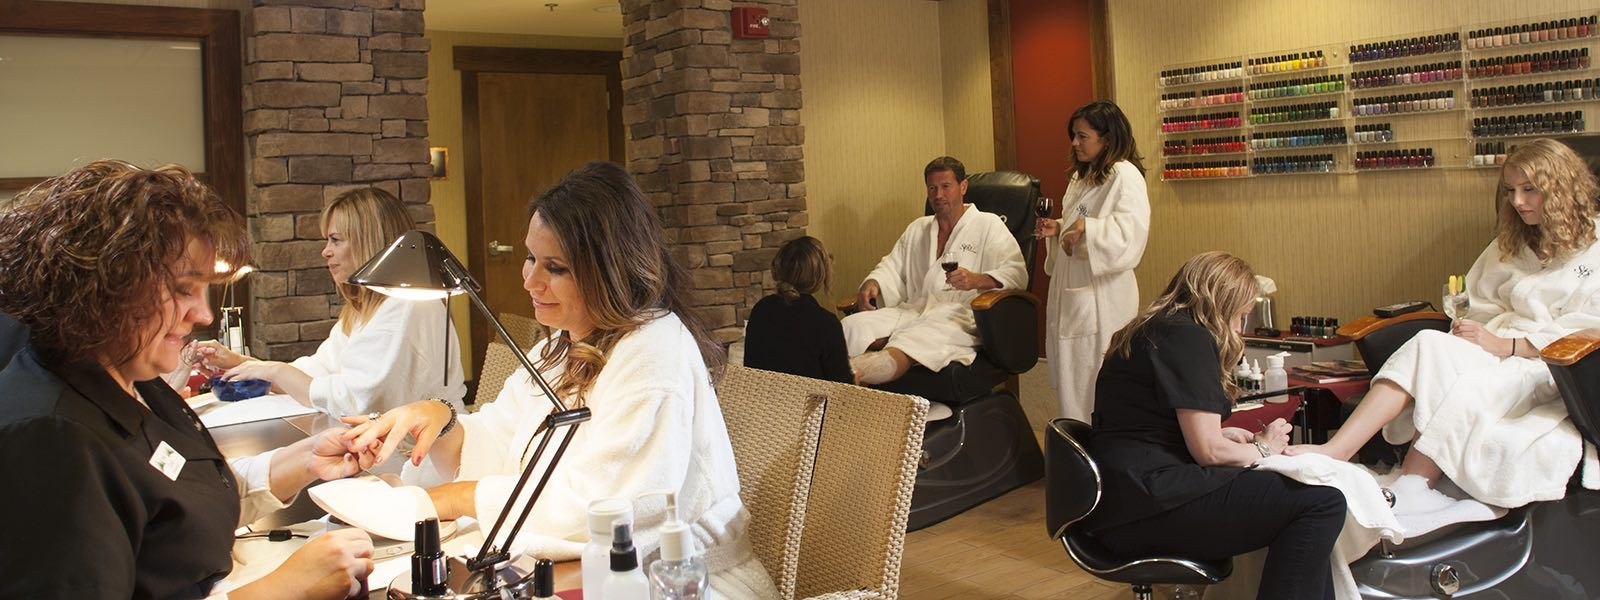 Salon full of people receiving treatments